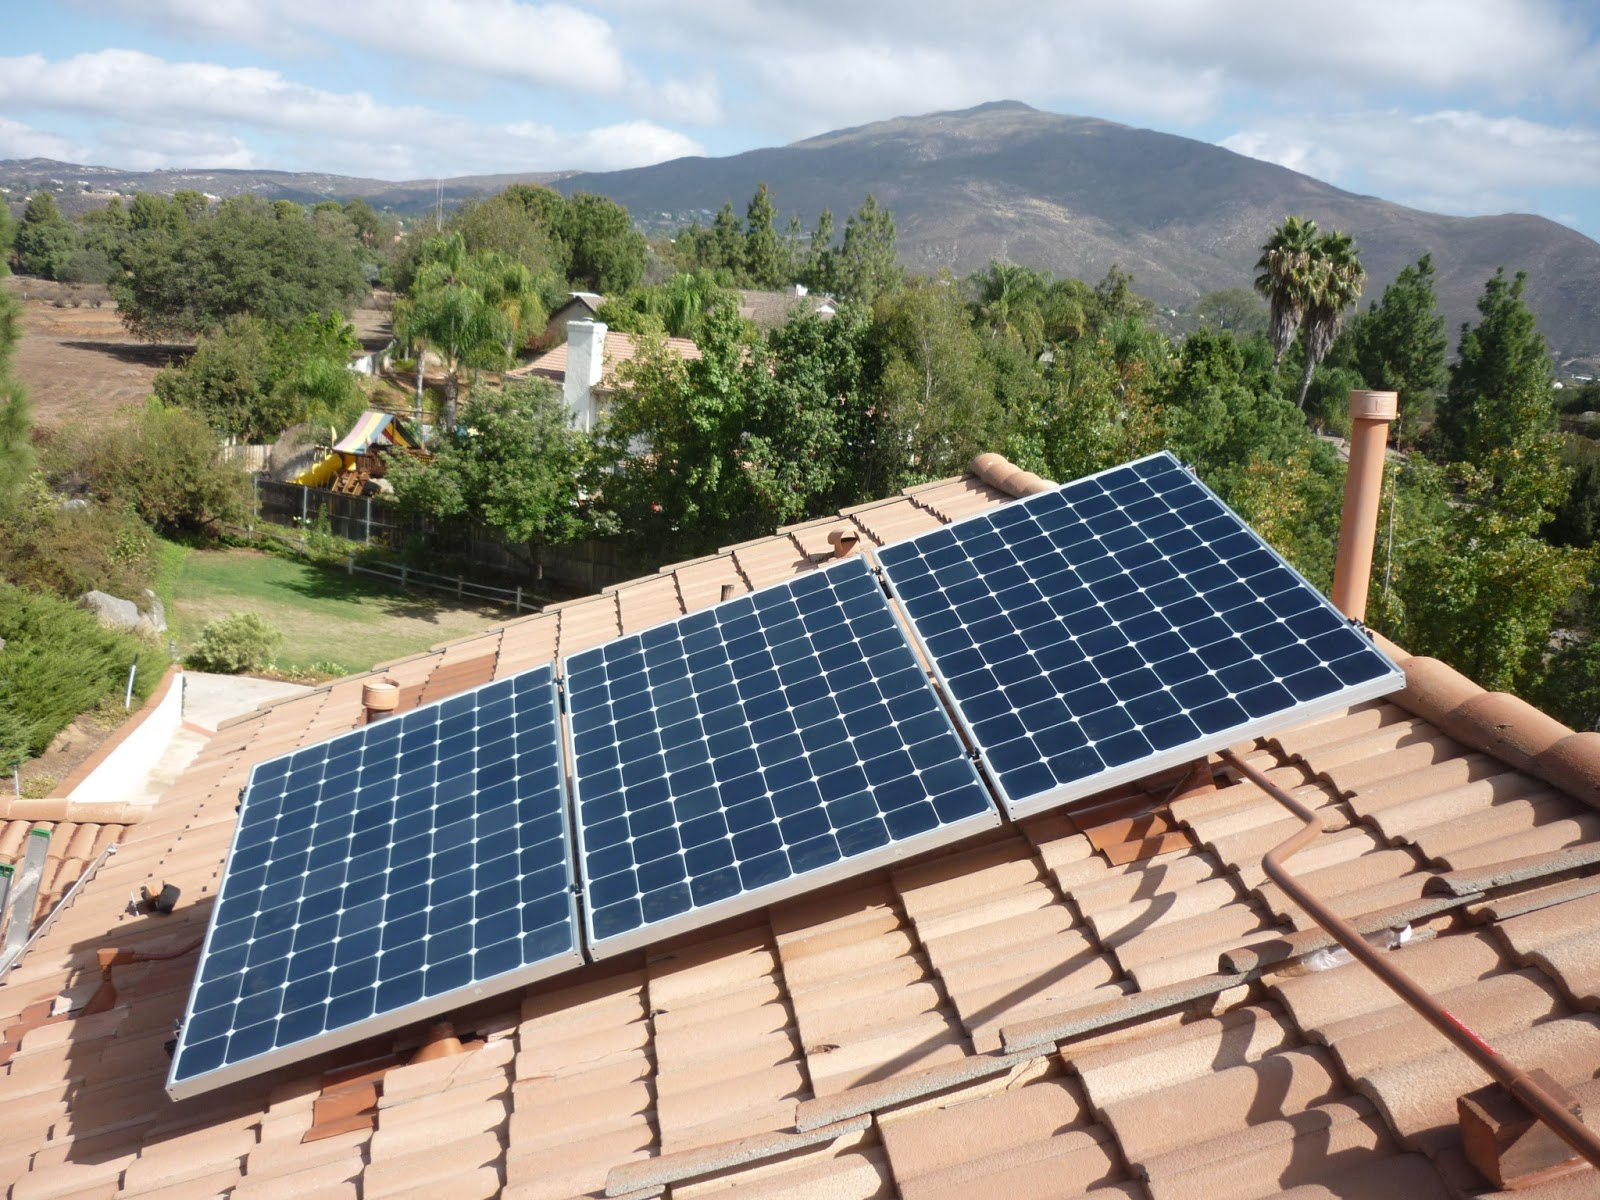 solaire energy systems blog california sets another solar power record. Black Bedroom Furniture Sets. Home Design Ideas